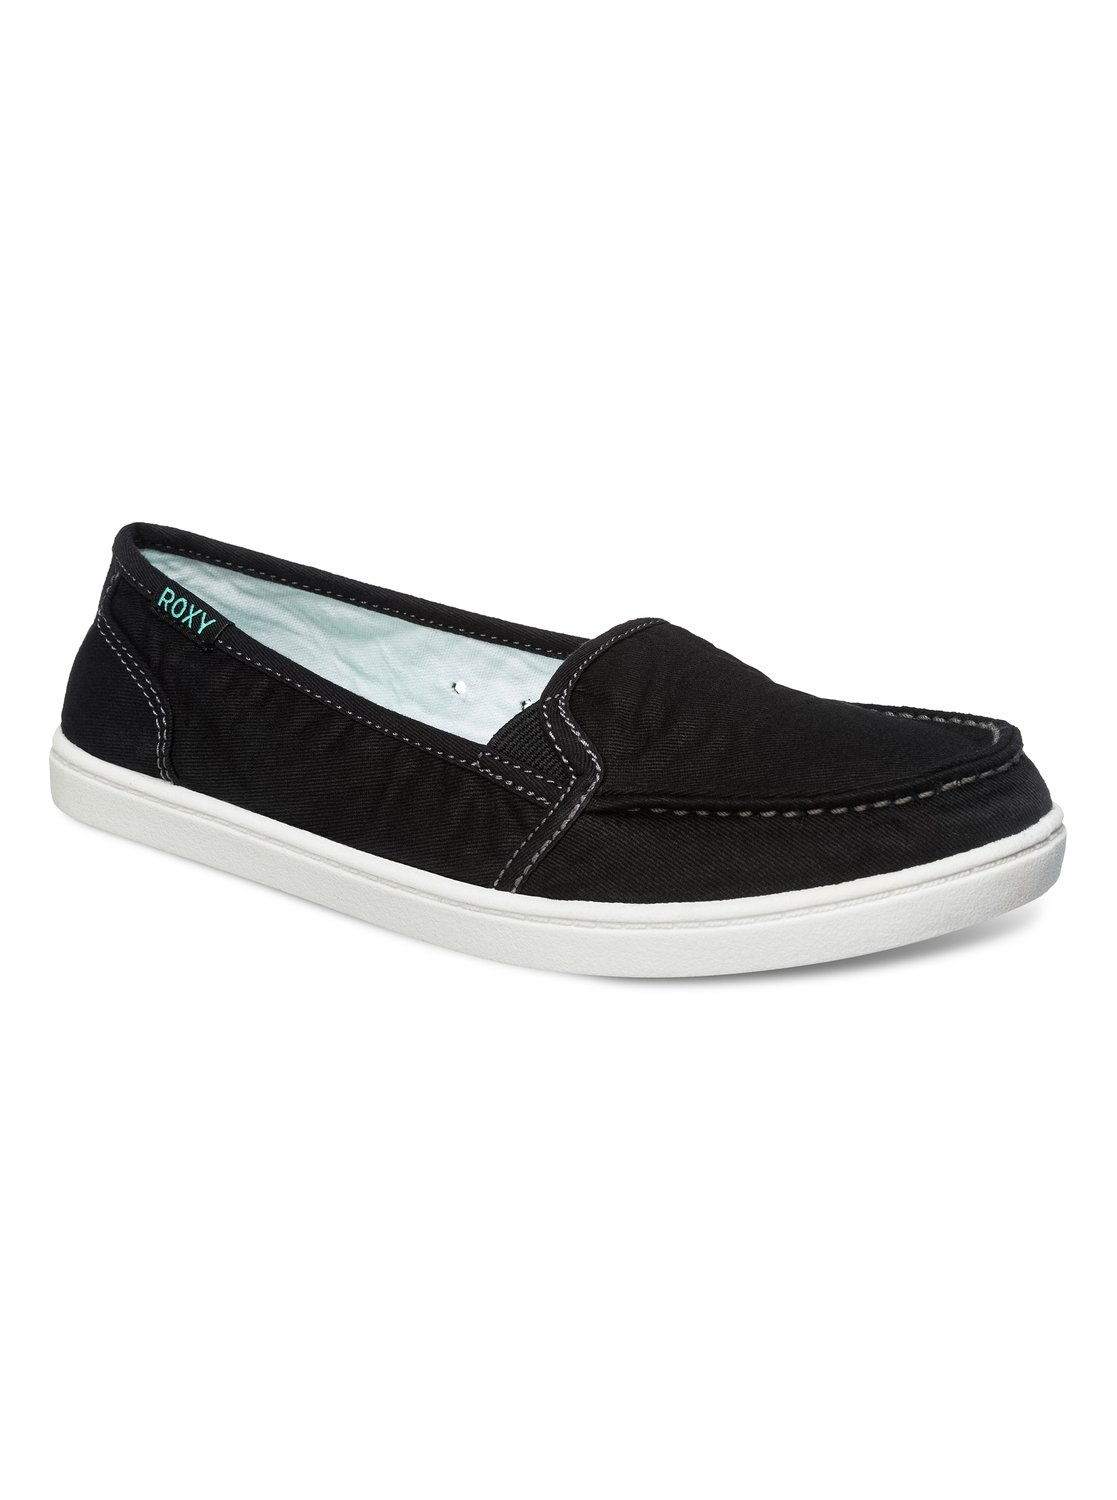 Womens Roxy Lido III Slip On Casual Shoe